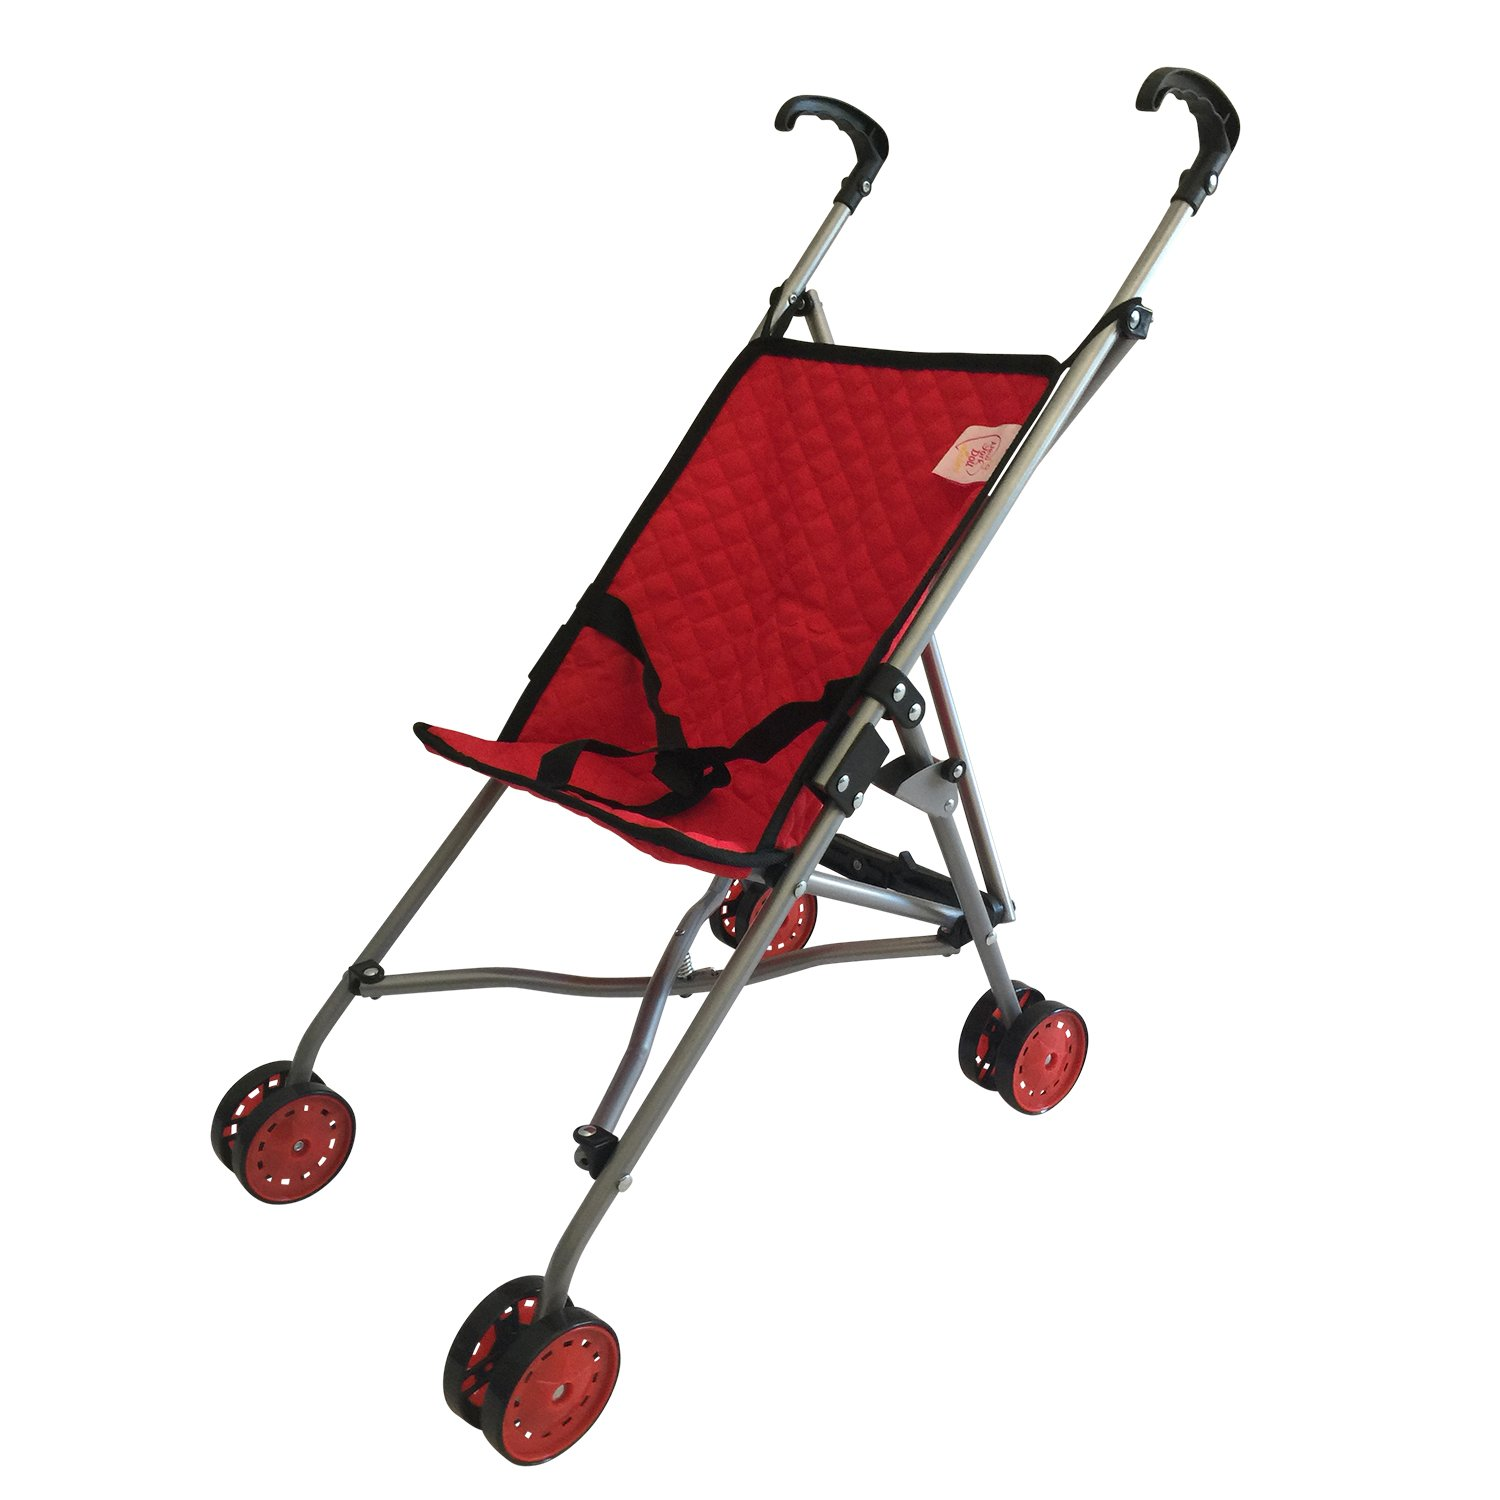 The New York Doll Collection First Dolls Stroller for Kids, - one piece - Red Color for18'' inch Folds for Storage - Great Gift for Toddlers by The New York Doll Collection